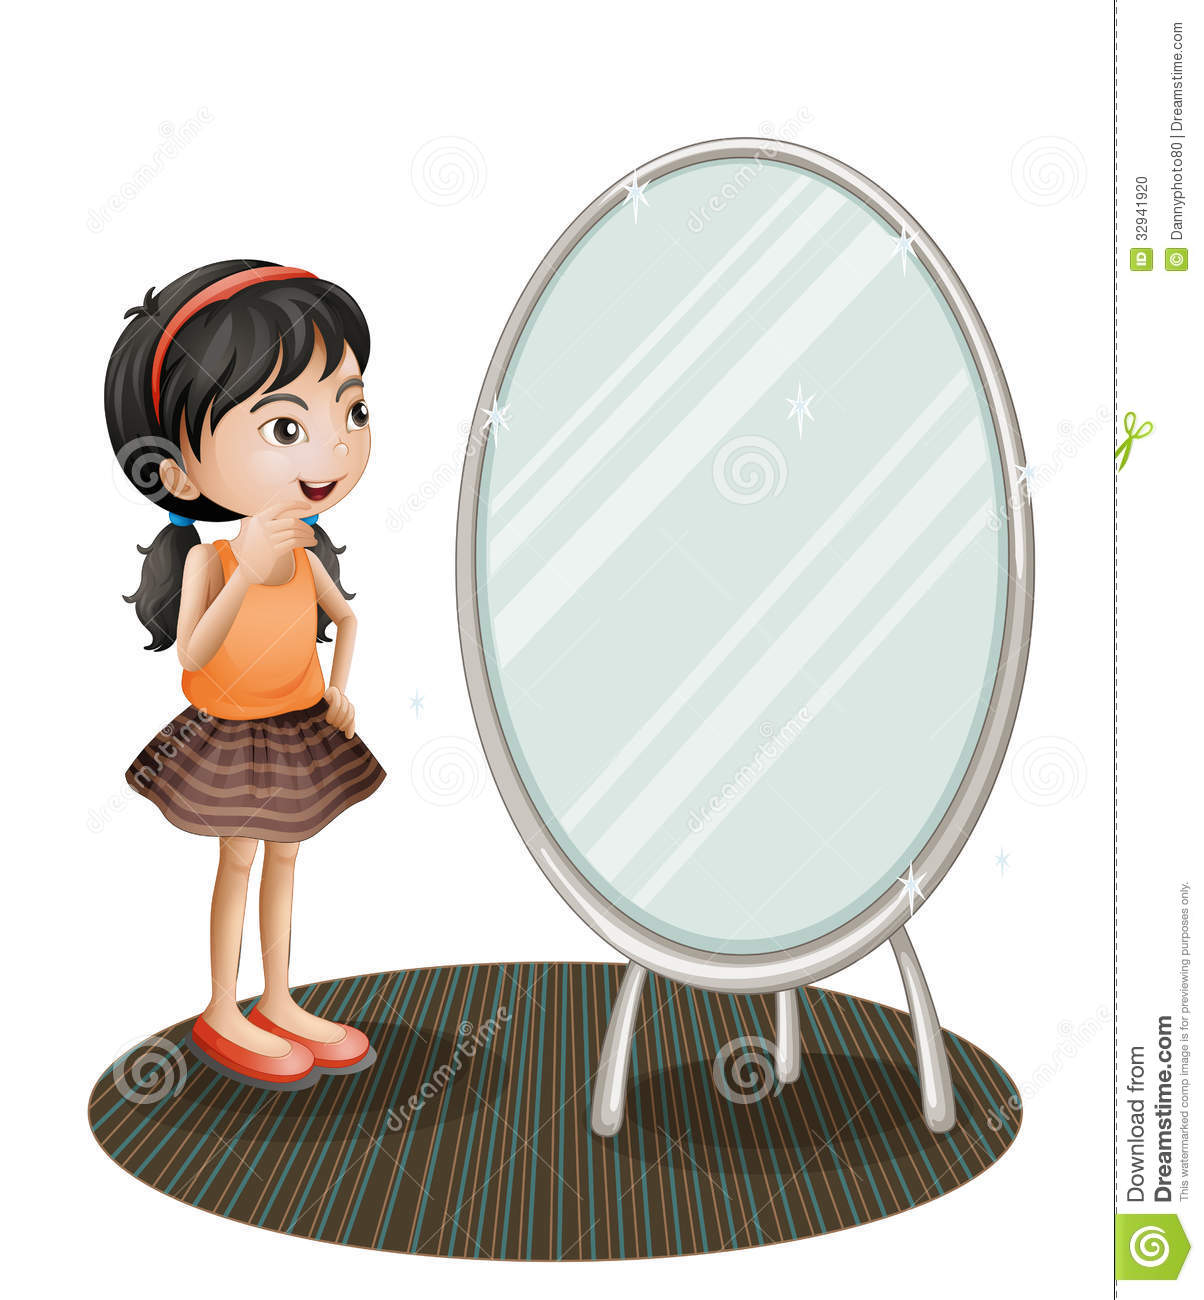 child looking in mirror clipart. royalty-free stock photo child looking in mirror clipart n